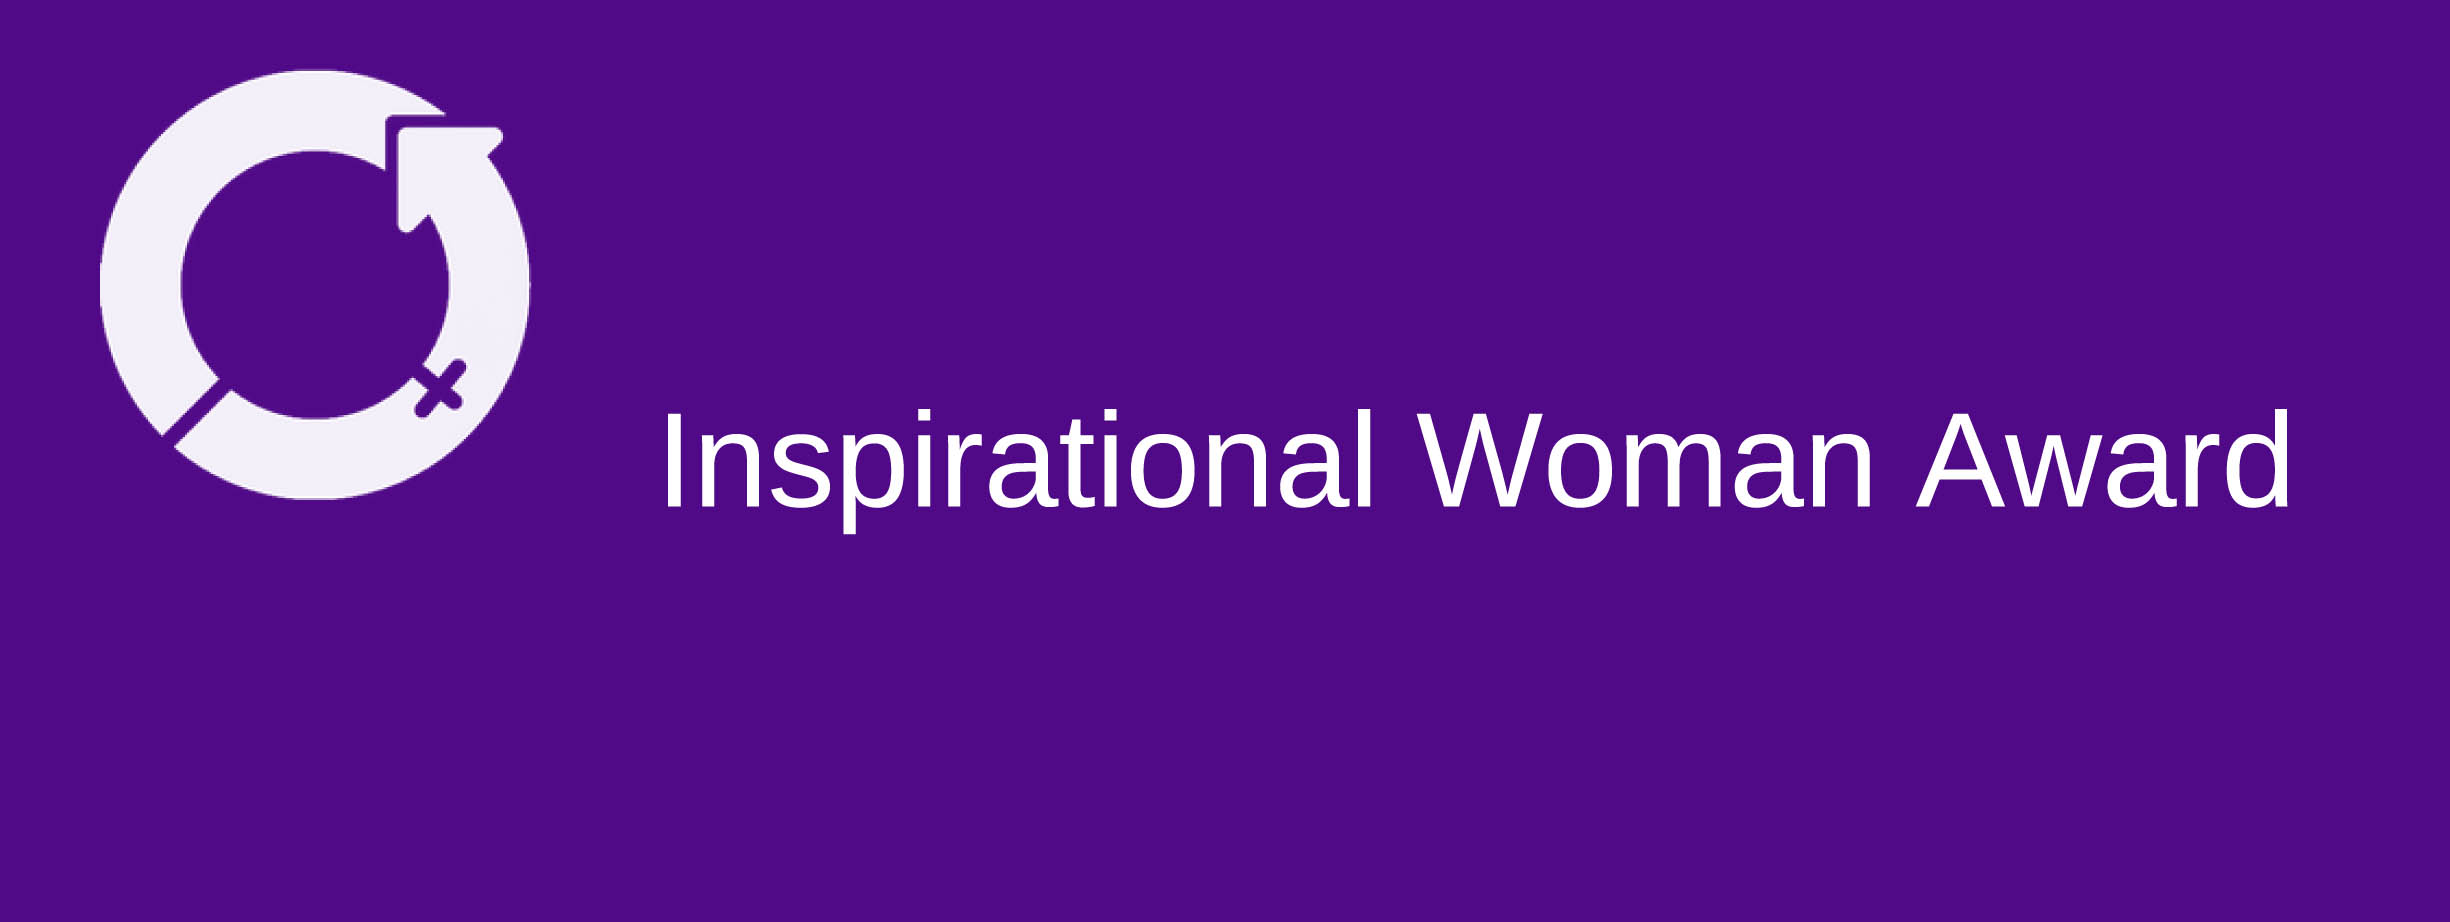 Inspirational Woman Award 2018